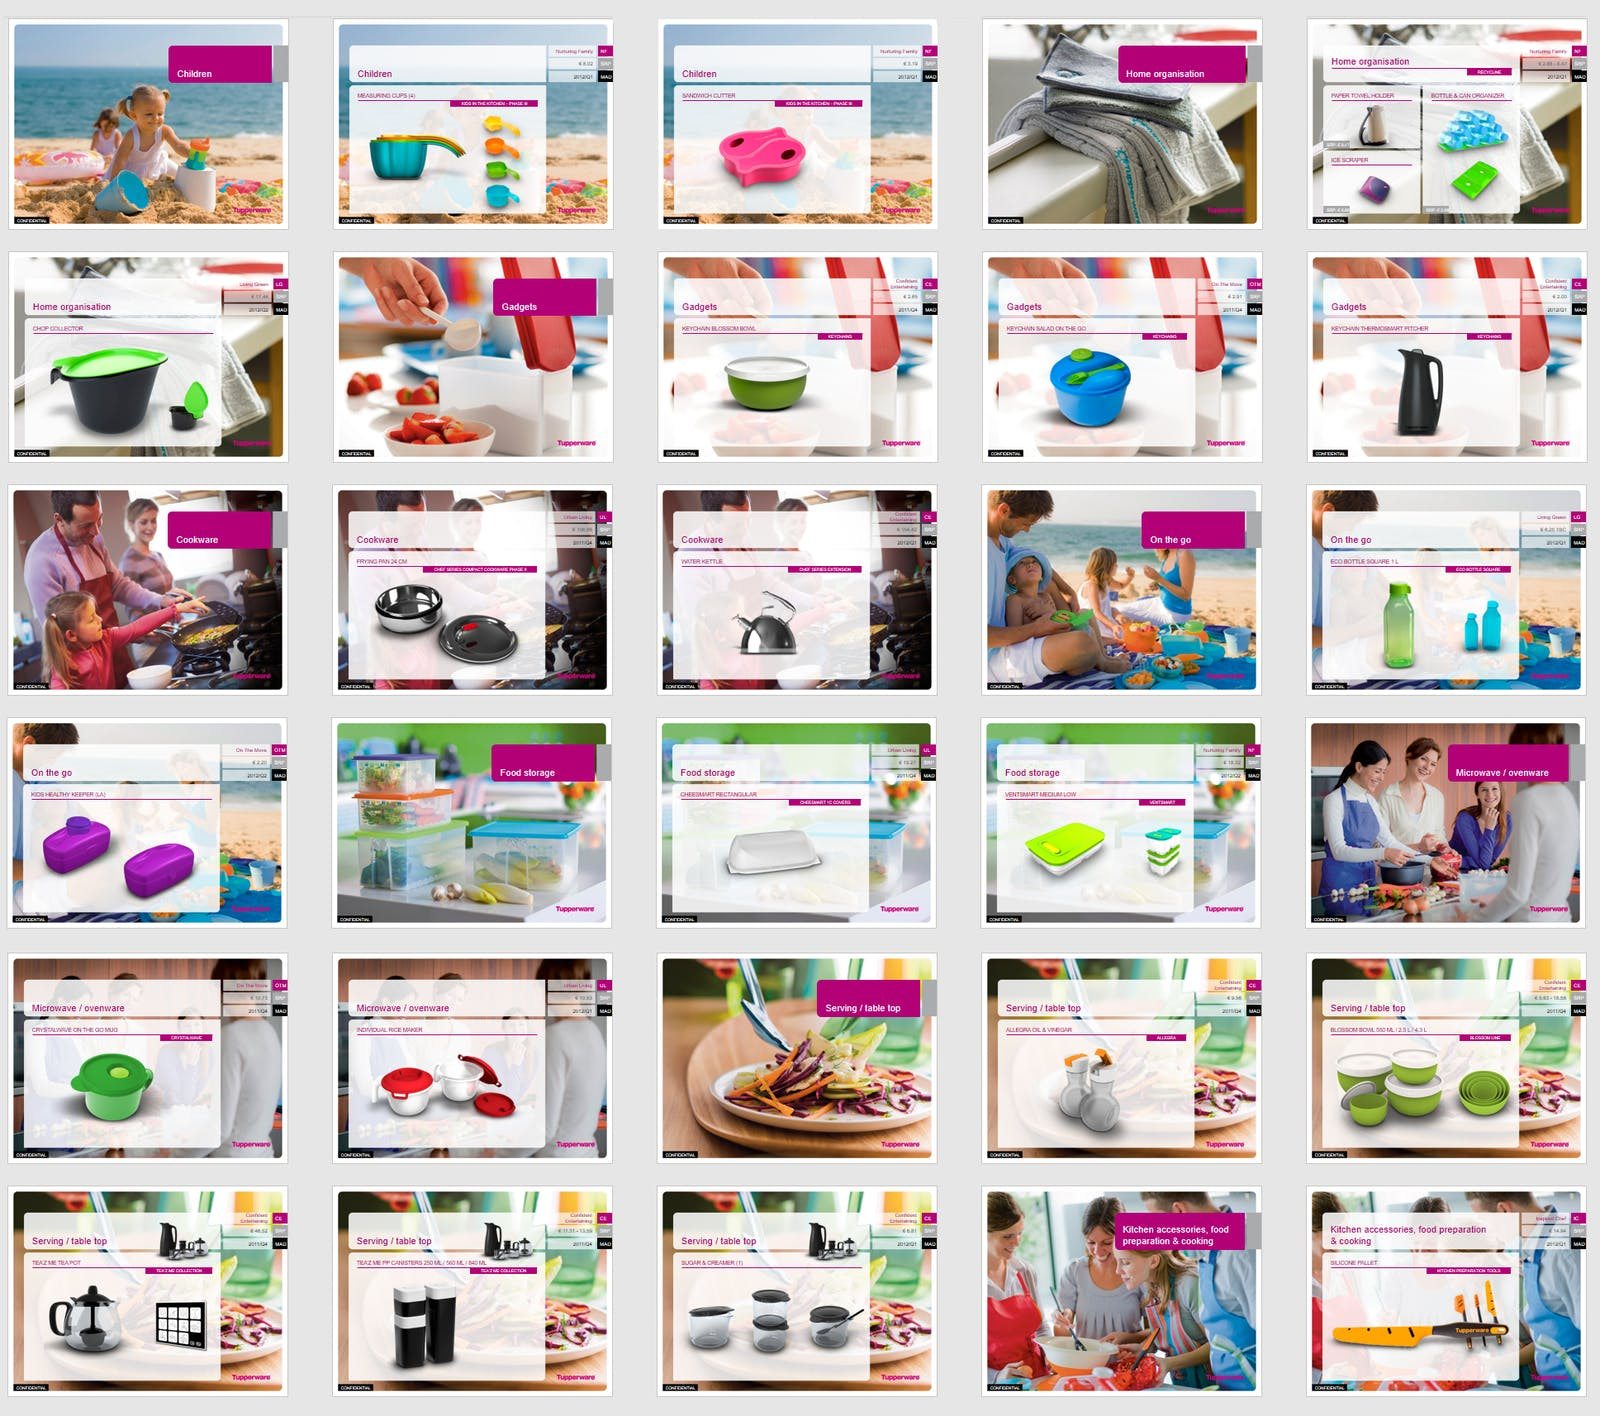 Tupperware PPT slides